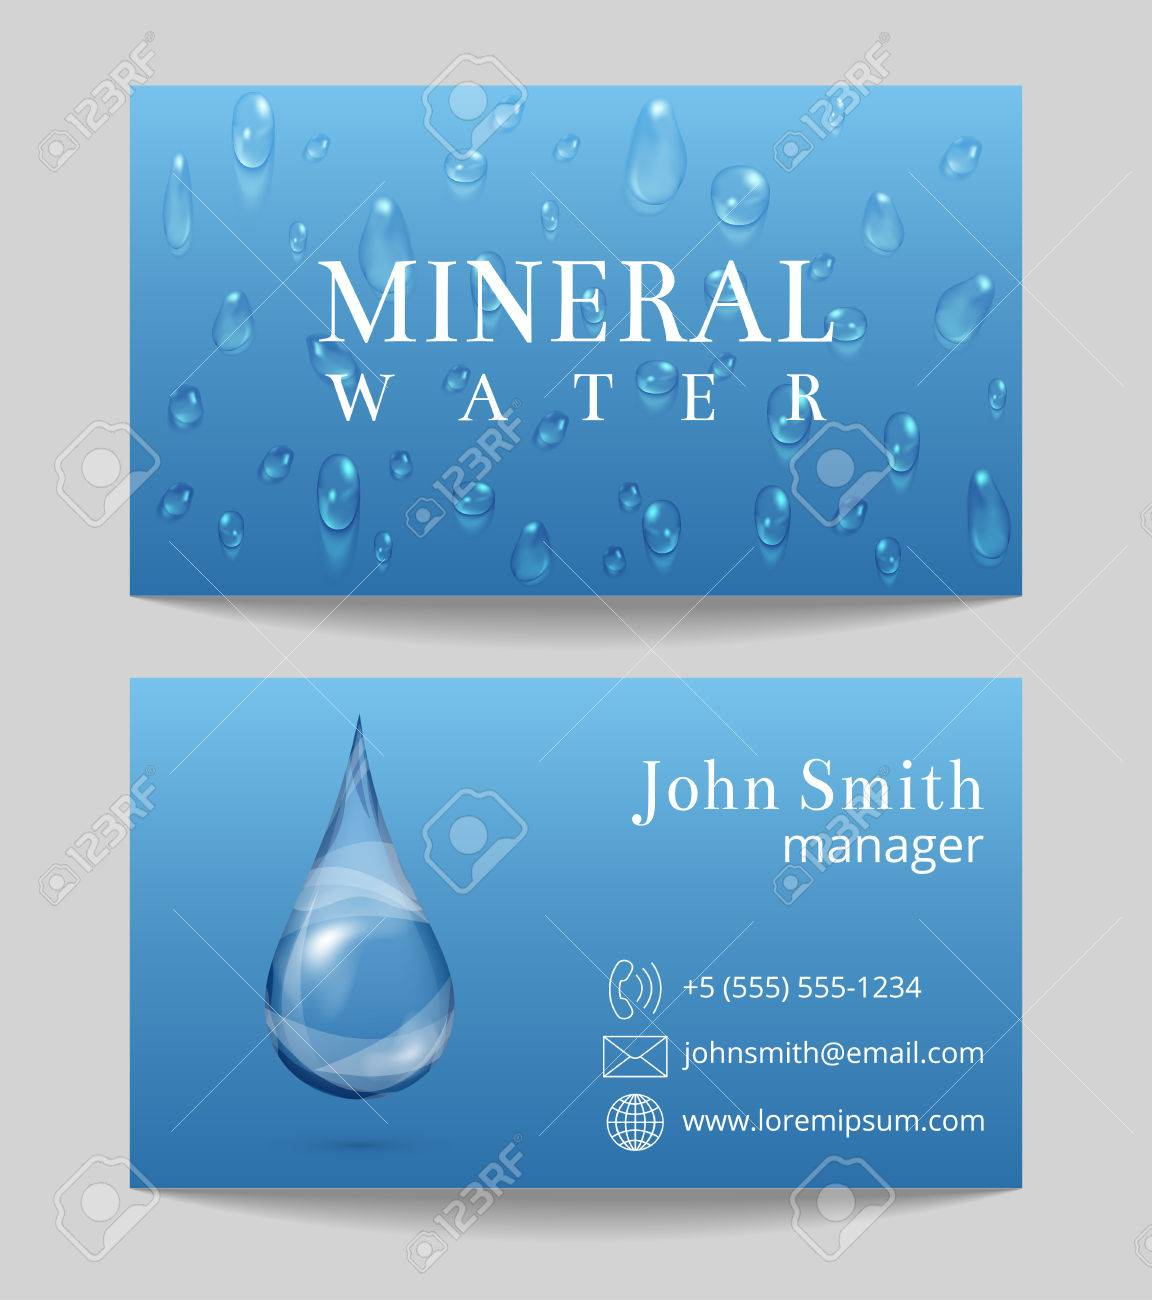 mineral water delivery business card both sides template drop